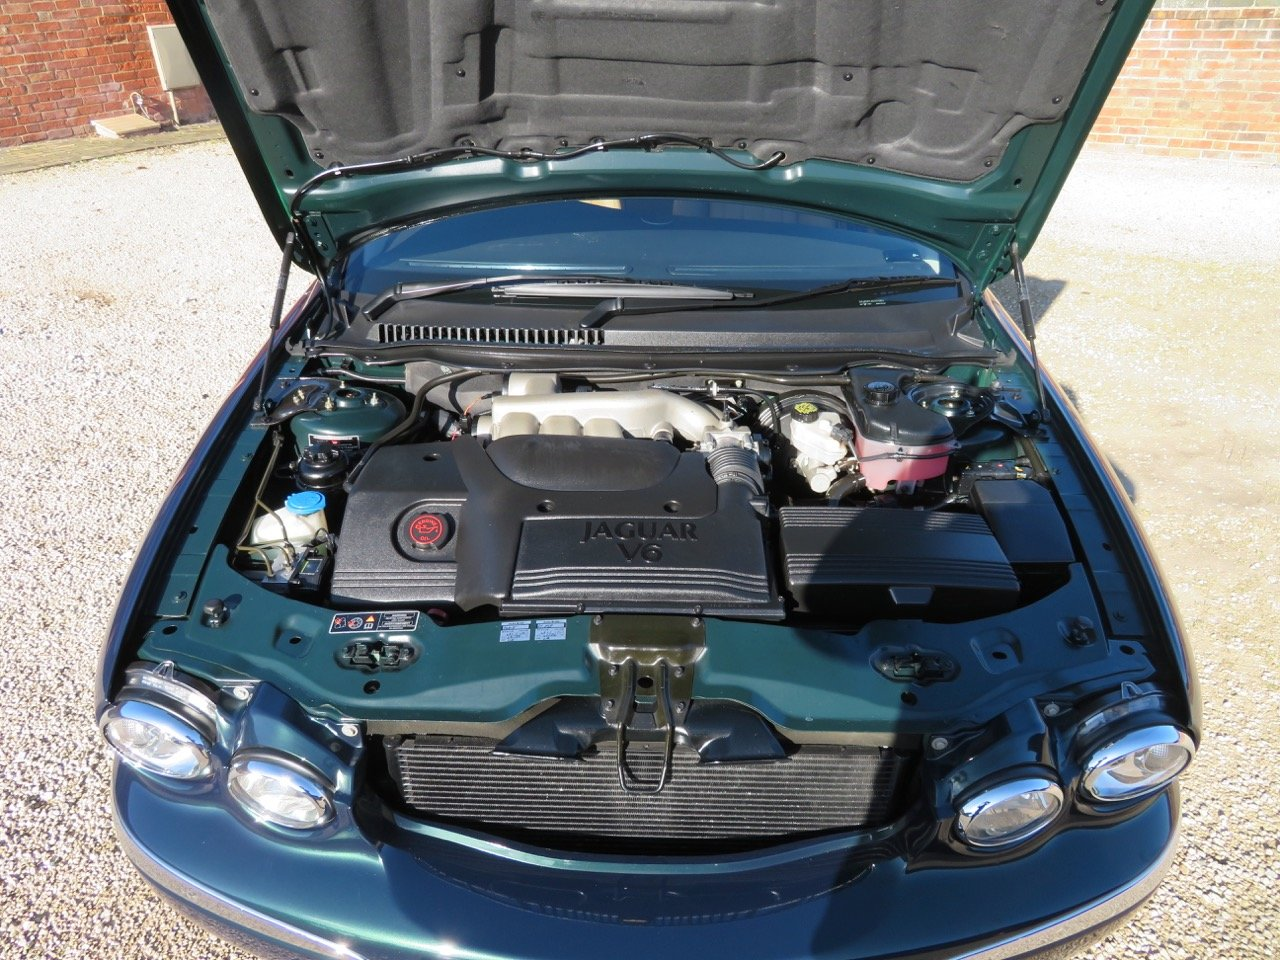 JAGUAR X-TYPE 3.0 V6 AUTO SE 2002 18K MILES FROM NEW 1 OWNER For Sale (picture 4 of 6)